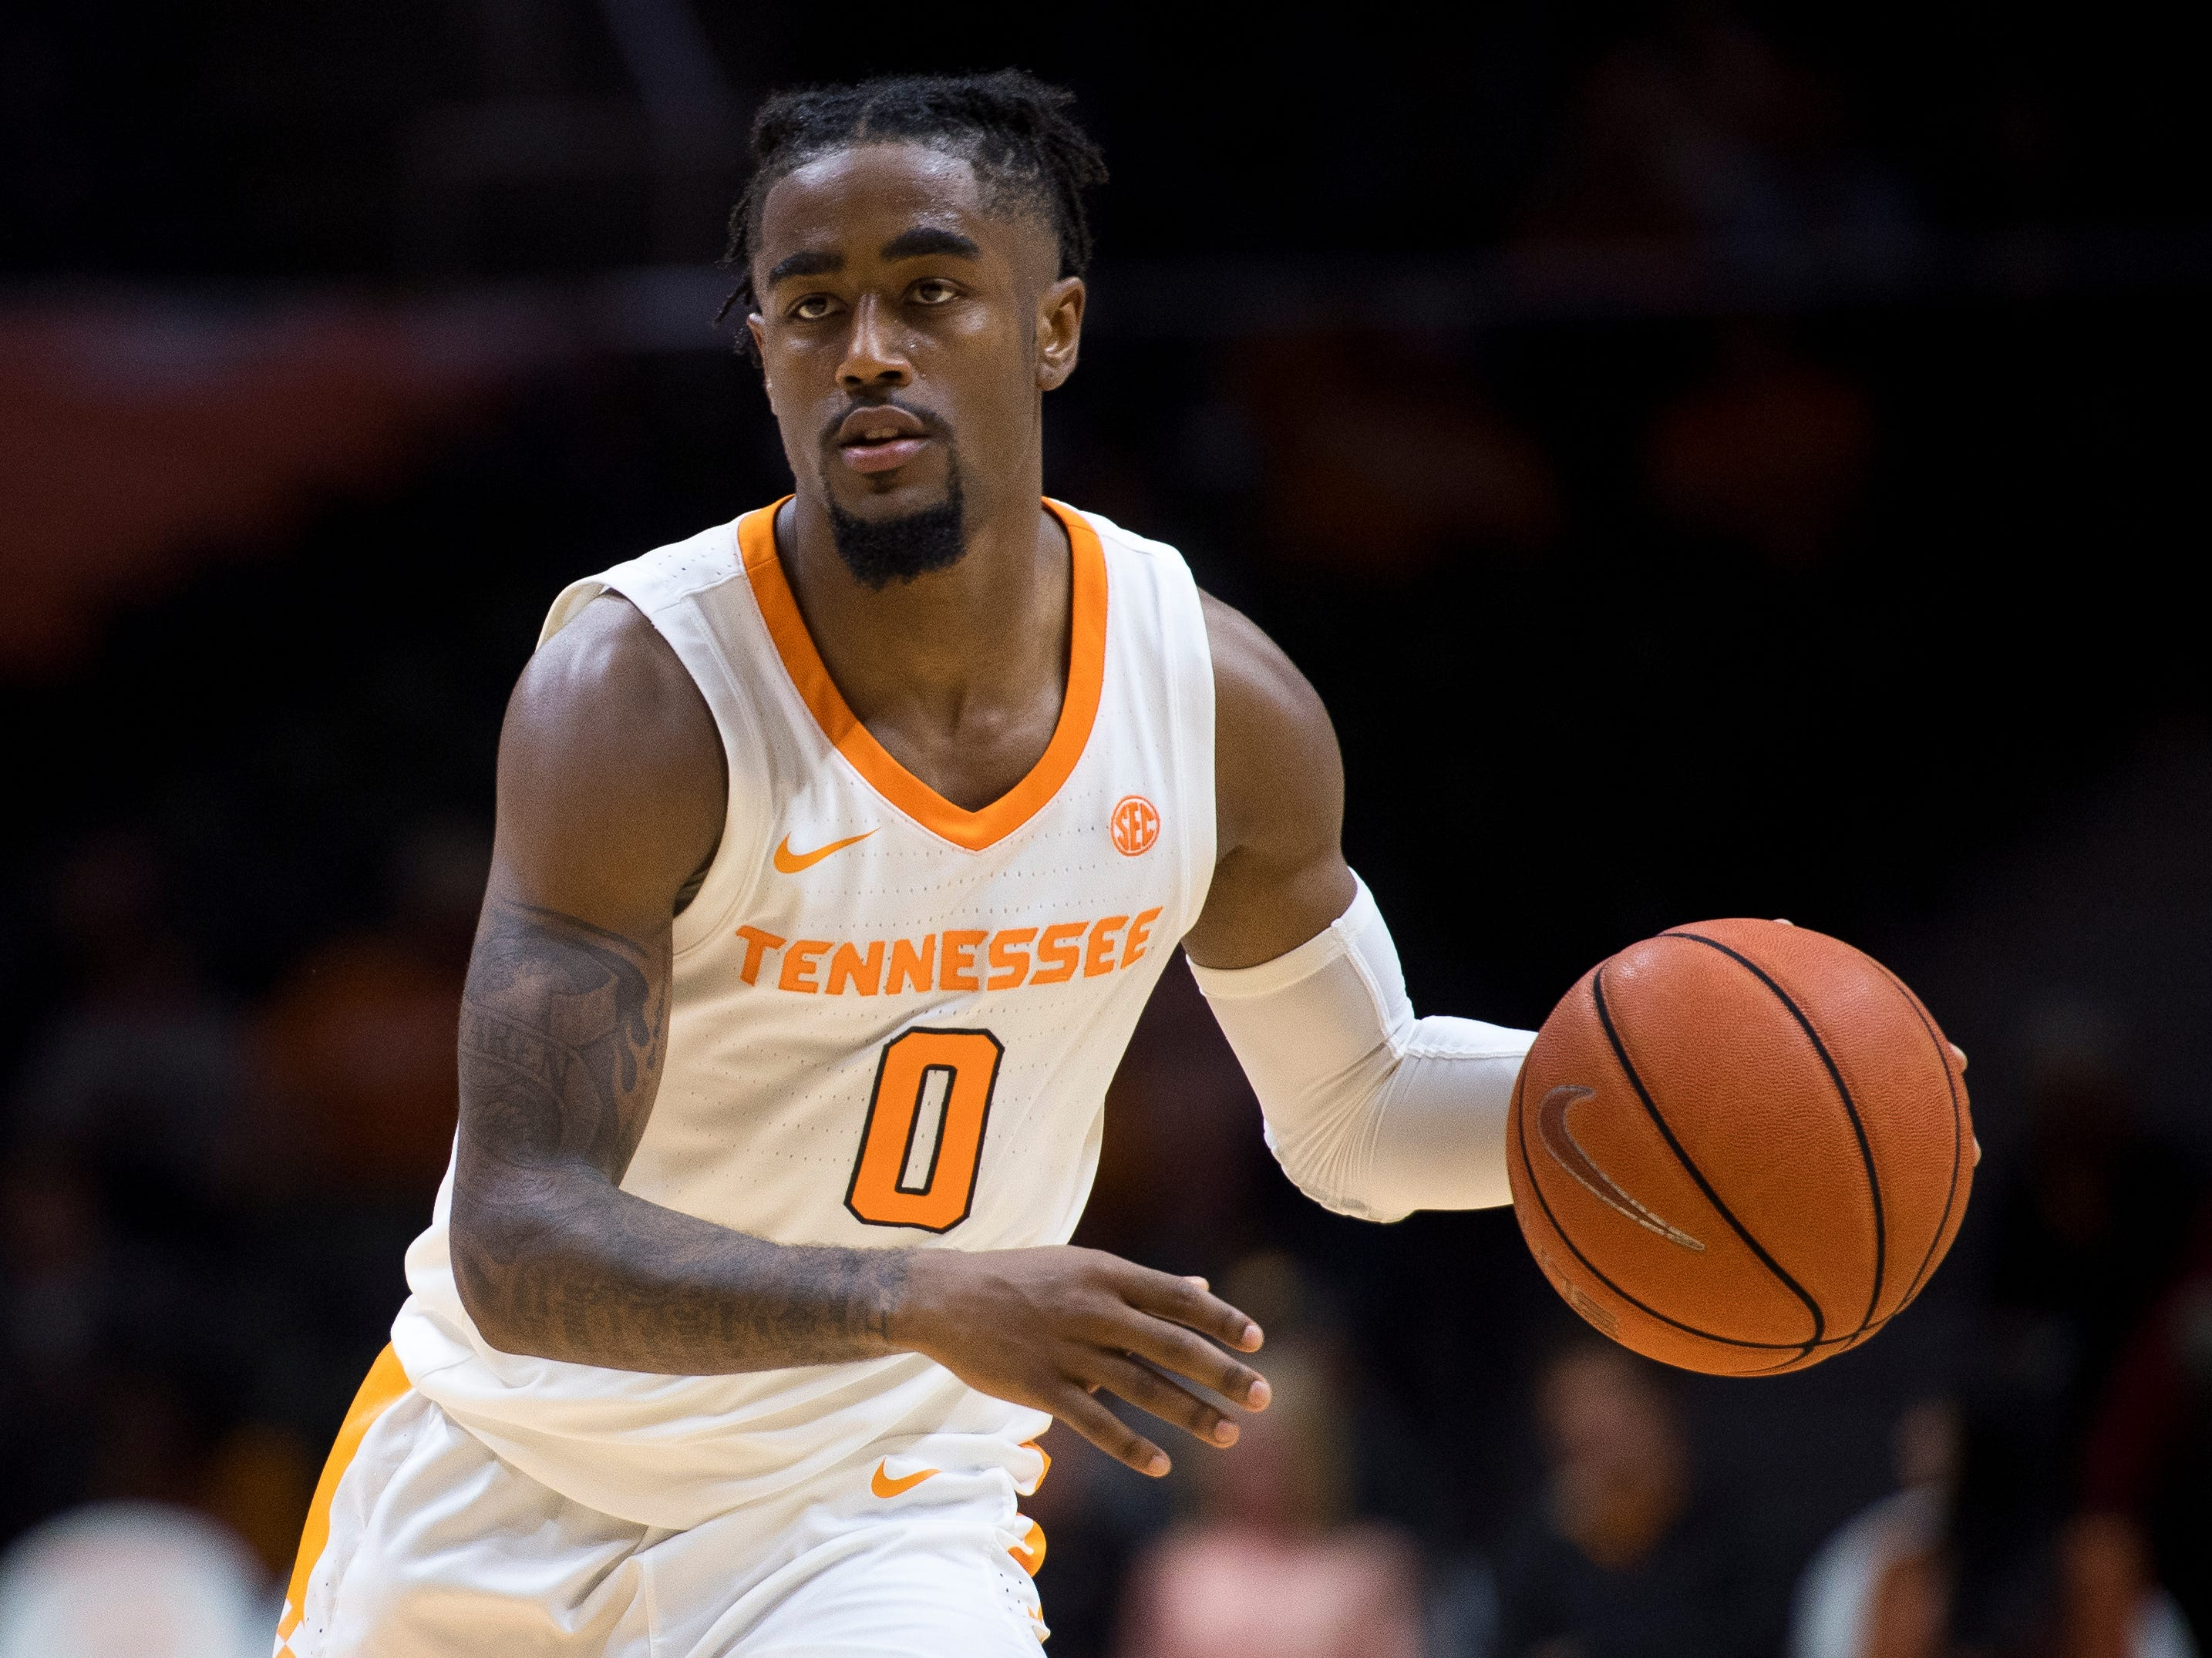 Tennessee guard Jordan Bone (0) during Tennessee's basketball game against Lenoir-Rhyne at Thompson-Boling Arena in Knoxville on Tuesday, November 6, 2018.